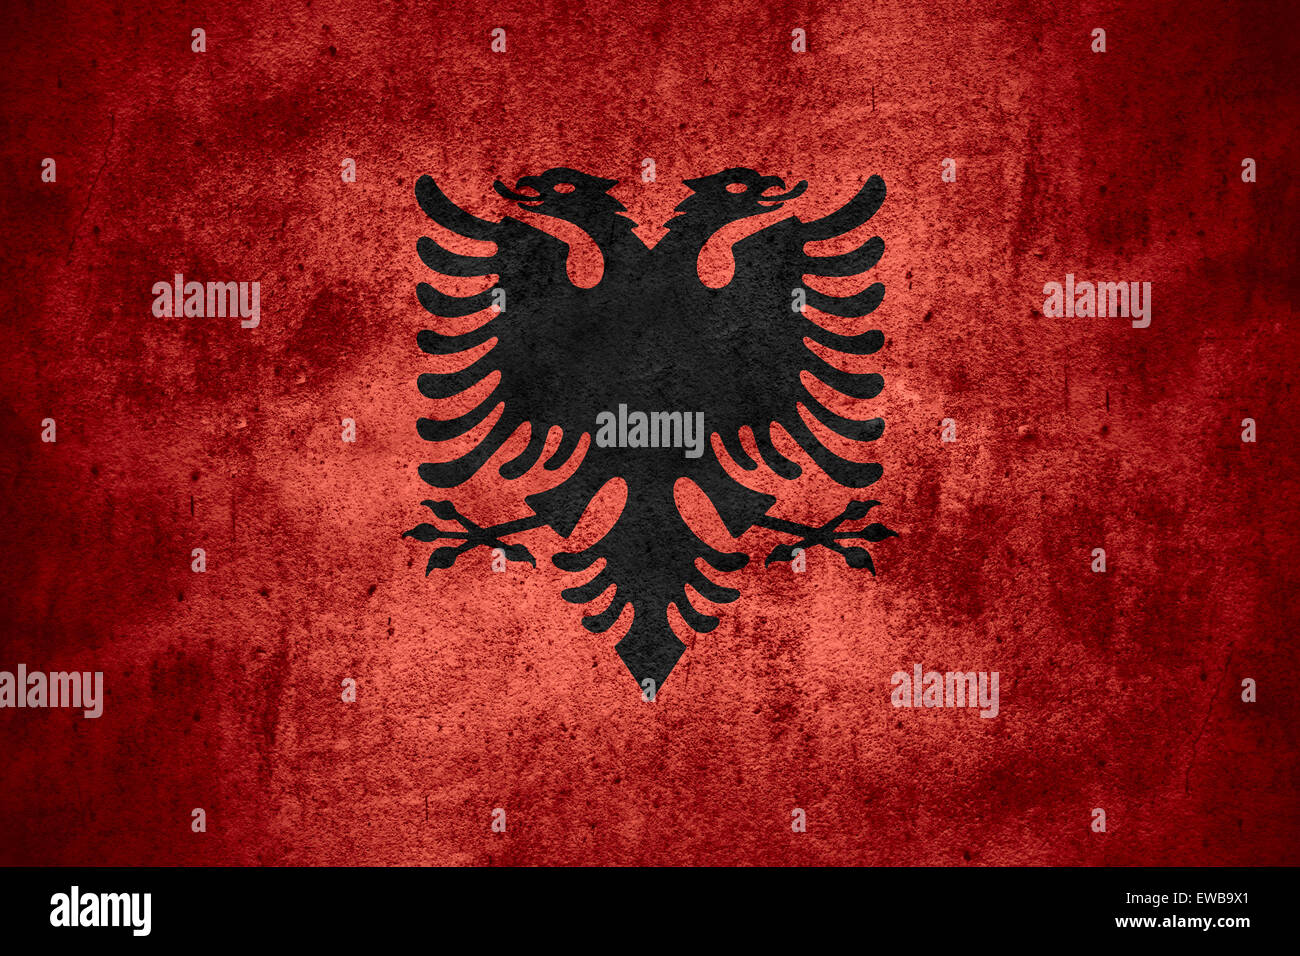 Flag Of Albania Or Albanian Banner On Rough Pattern Texture Stock - Albania flag